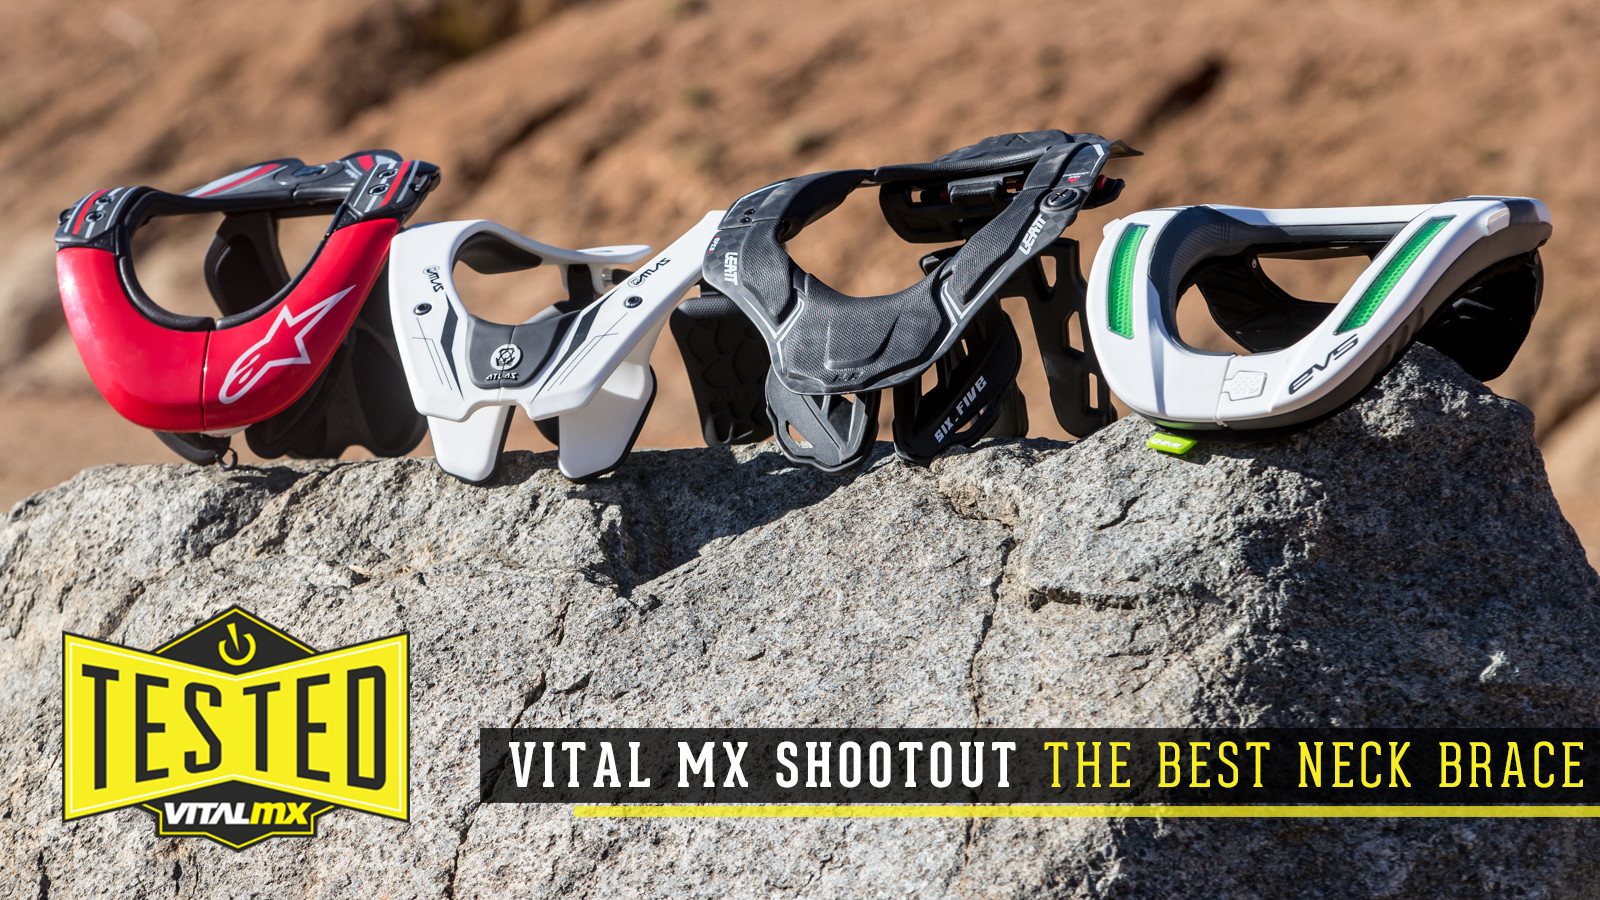 Vital MX Shootout: The Best Neck Brace